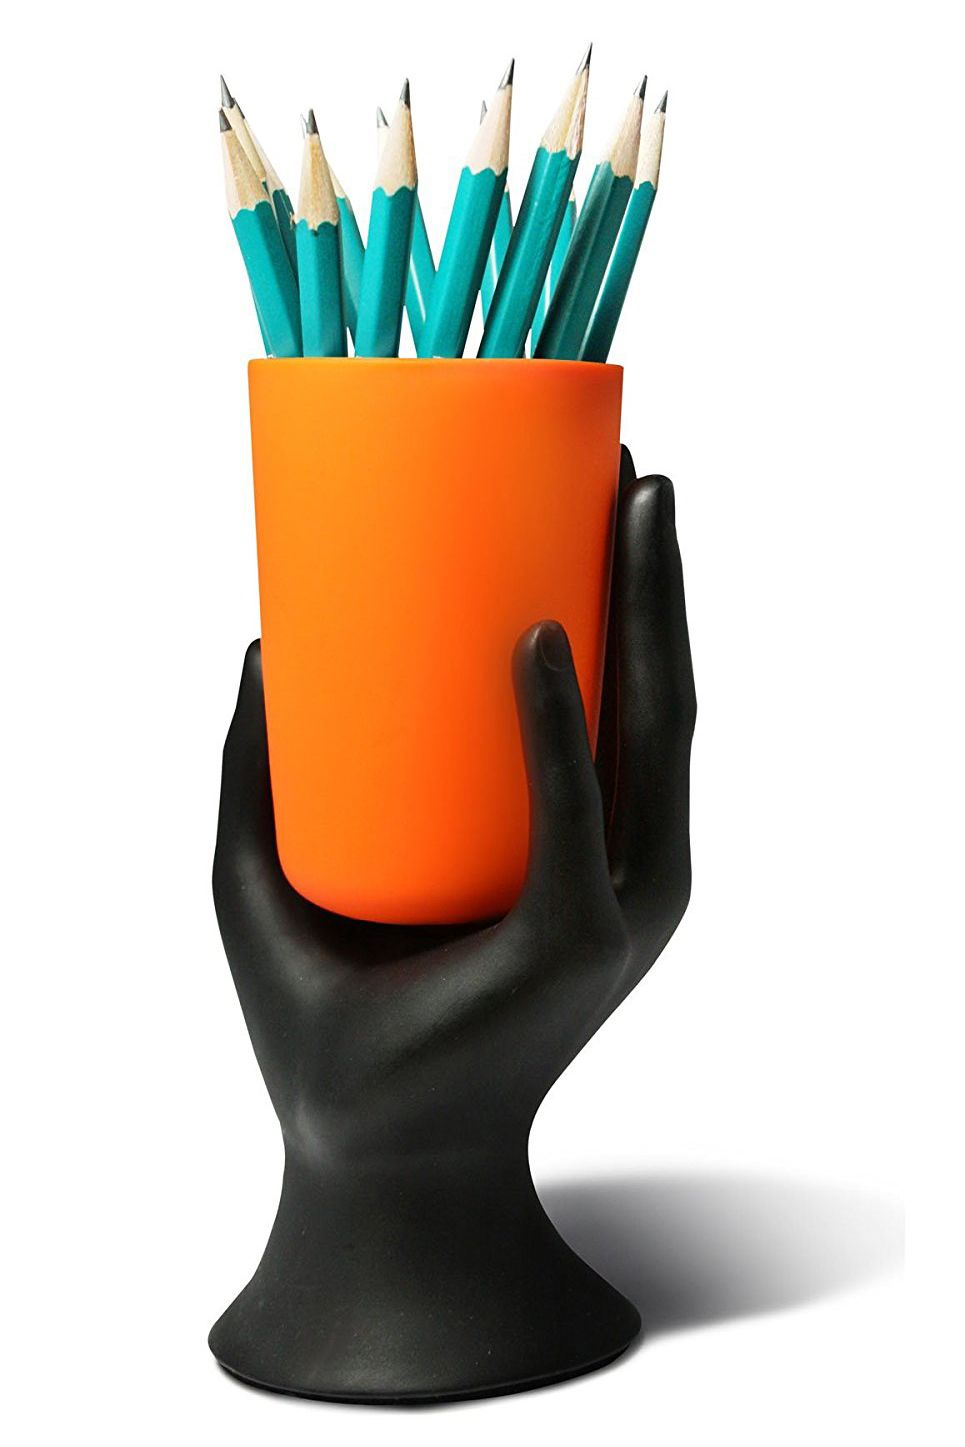 arad hand cup pen pencil holder by lilgift